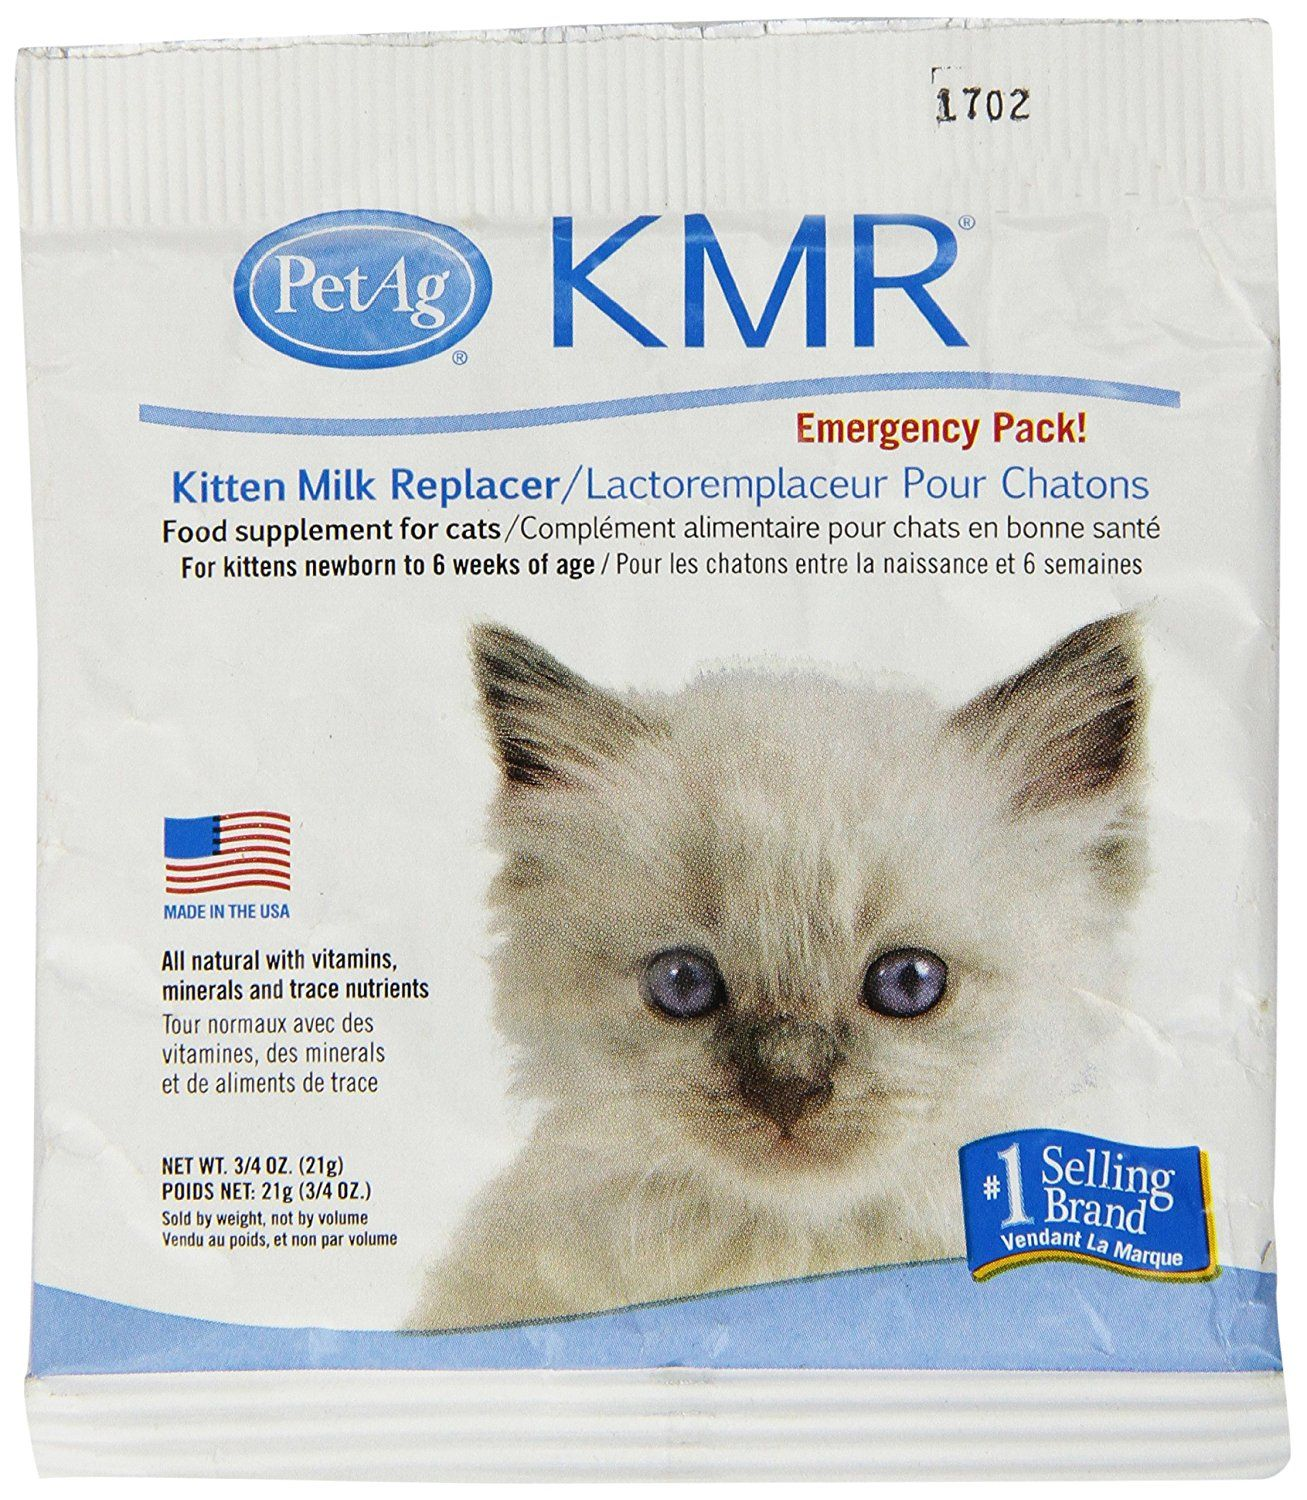 Kmr Kitten Milk Replacer Check Out This Great Product This Is An Affiliate Link Doglovers Dog Milk Emergency Packs Dog Diapers